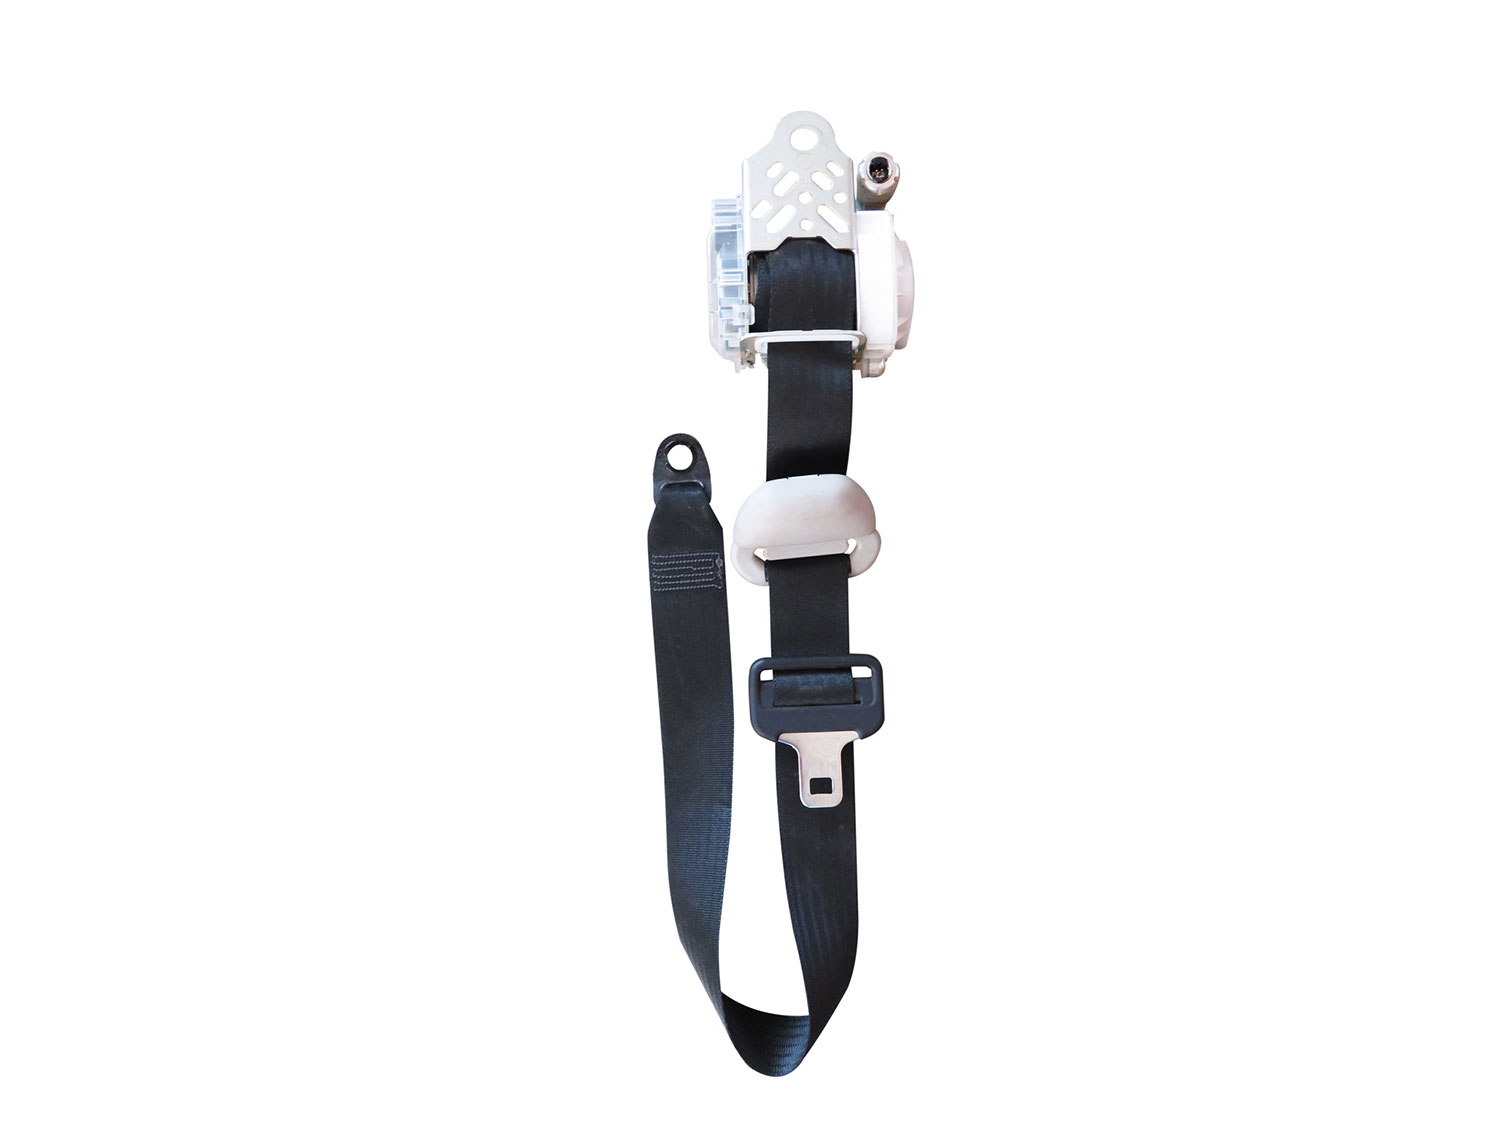 Suppliers Of Quality Used Toyota Quantum Seatbelts | Taxi Auto Parts